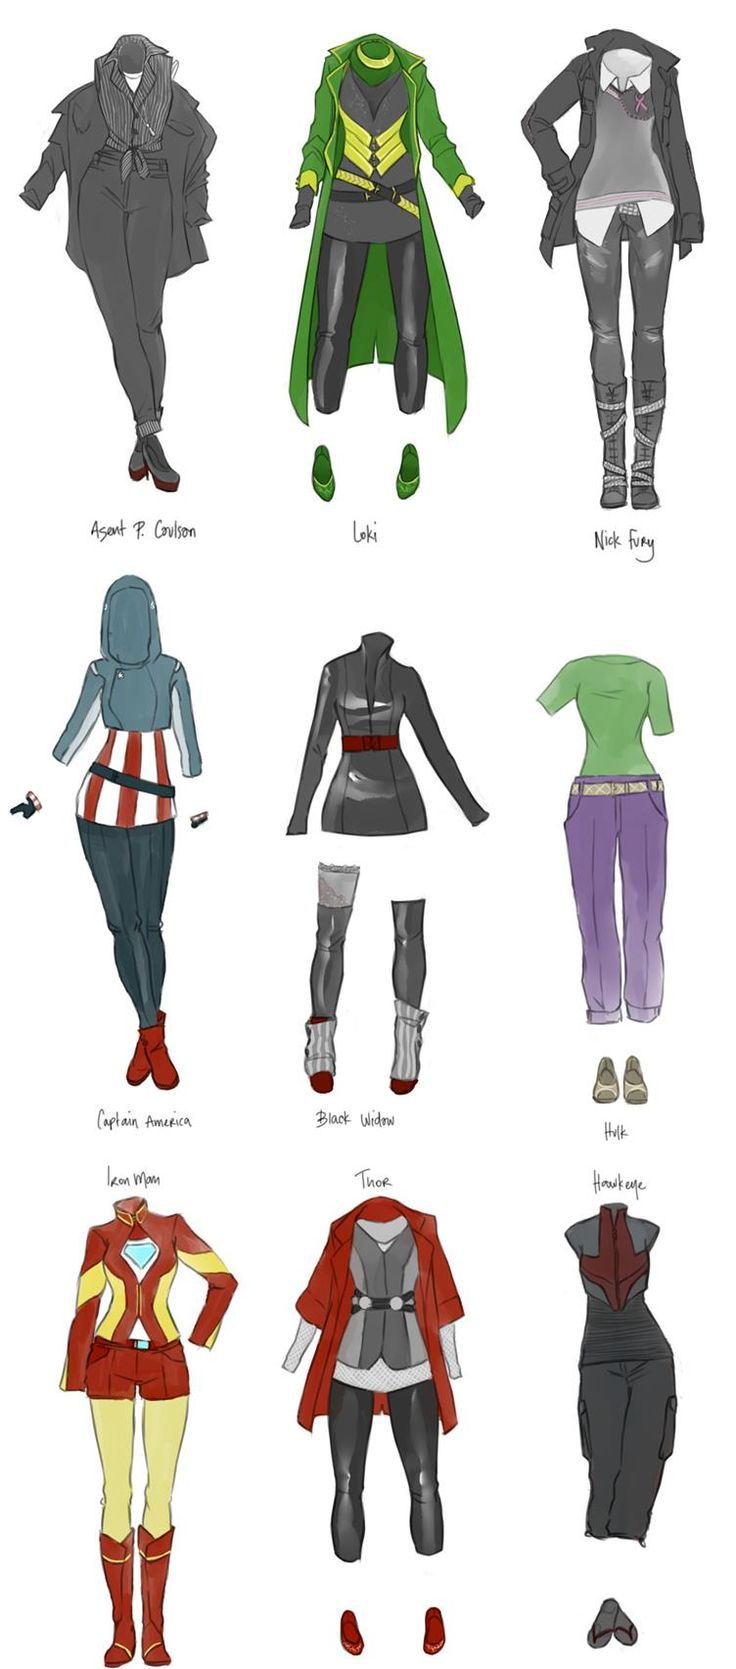 I'm not that big into fashion, but it would be so cool to create one of these outfits! I especially like the iron man one